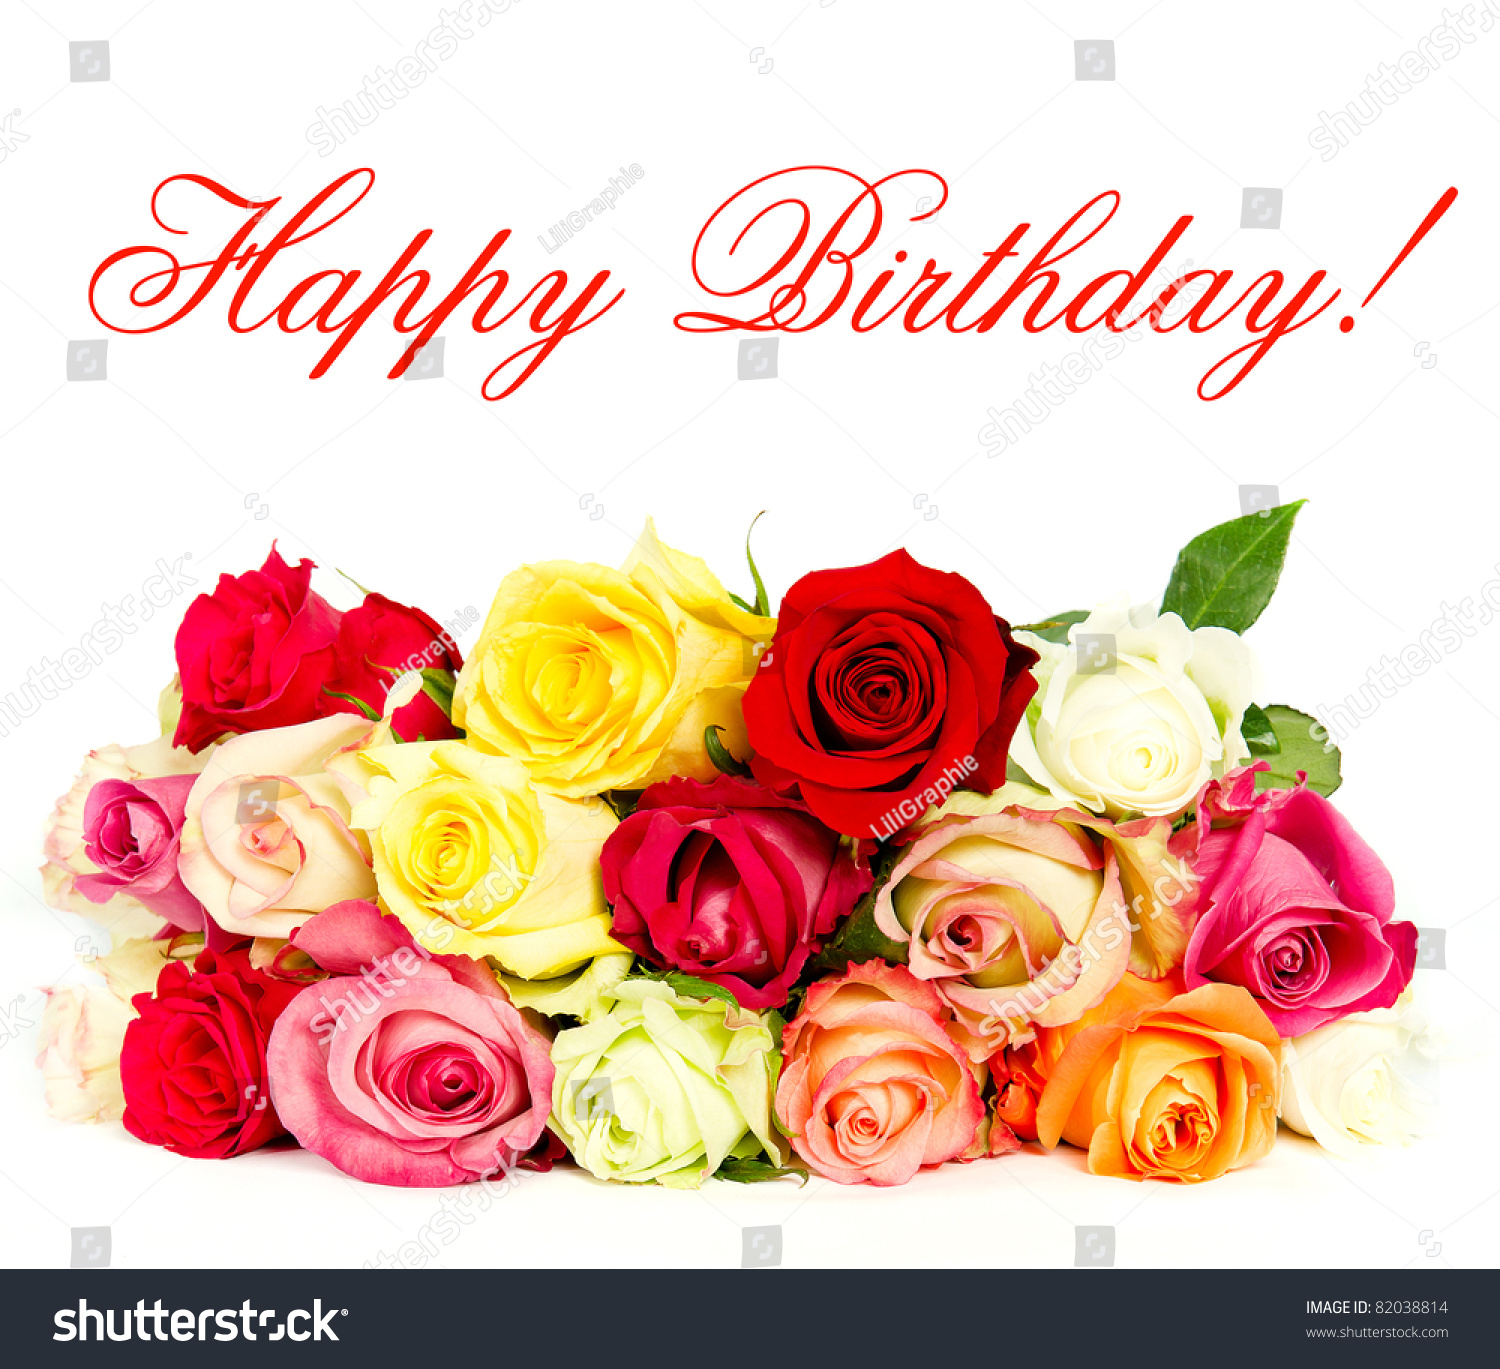 Happy birthday colorful roses beautiful flower stock photo edit now happy birthday colorful roses beautiful flower bouquet card concept izmirmasajfo